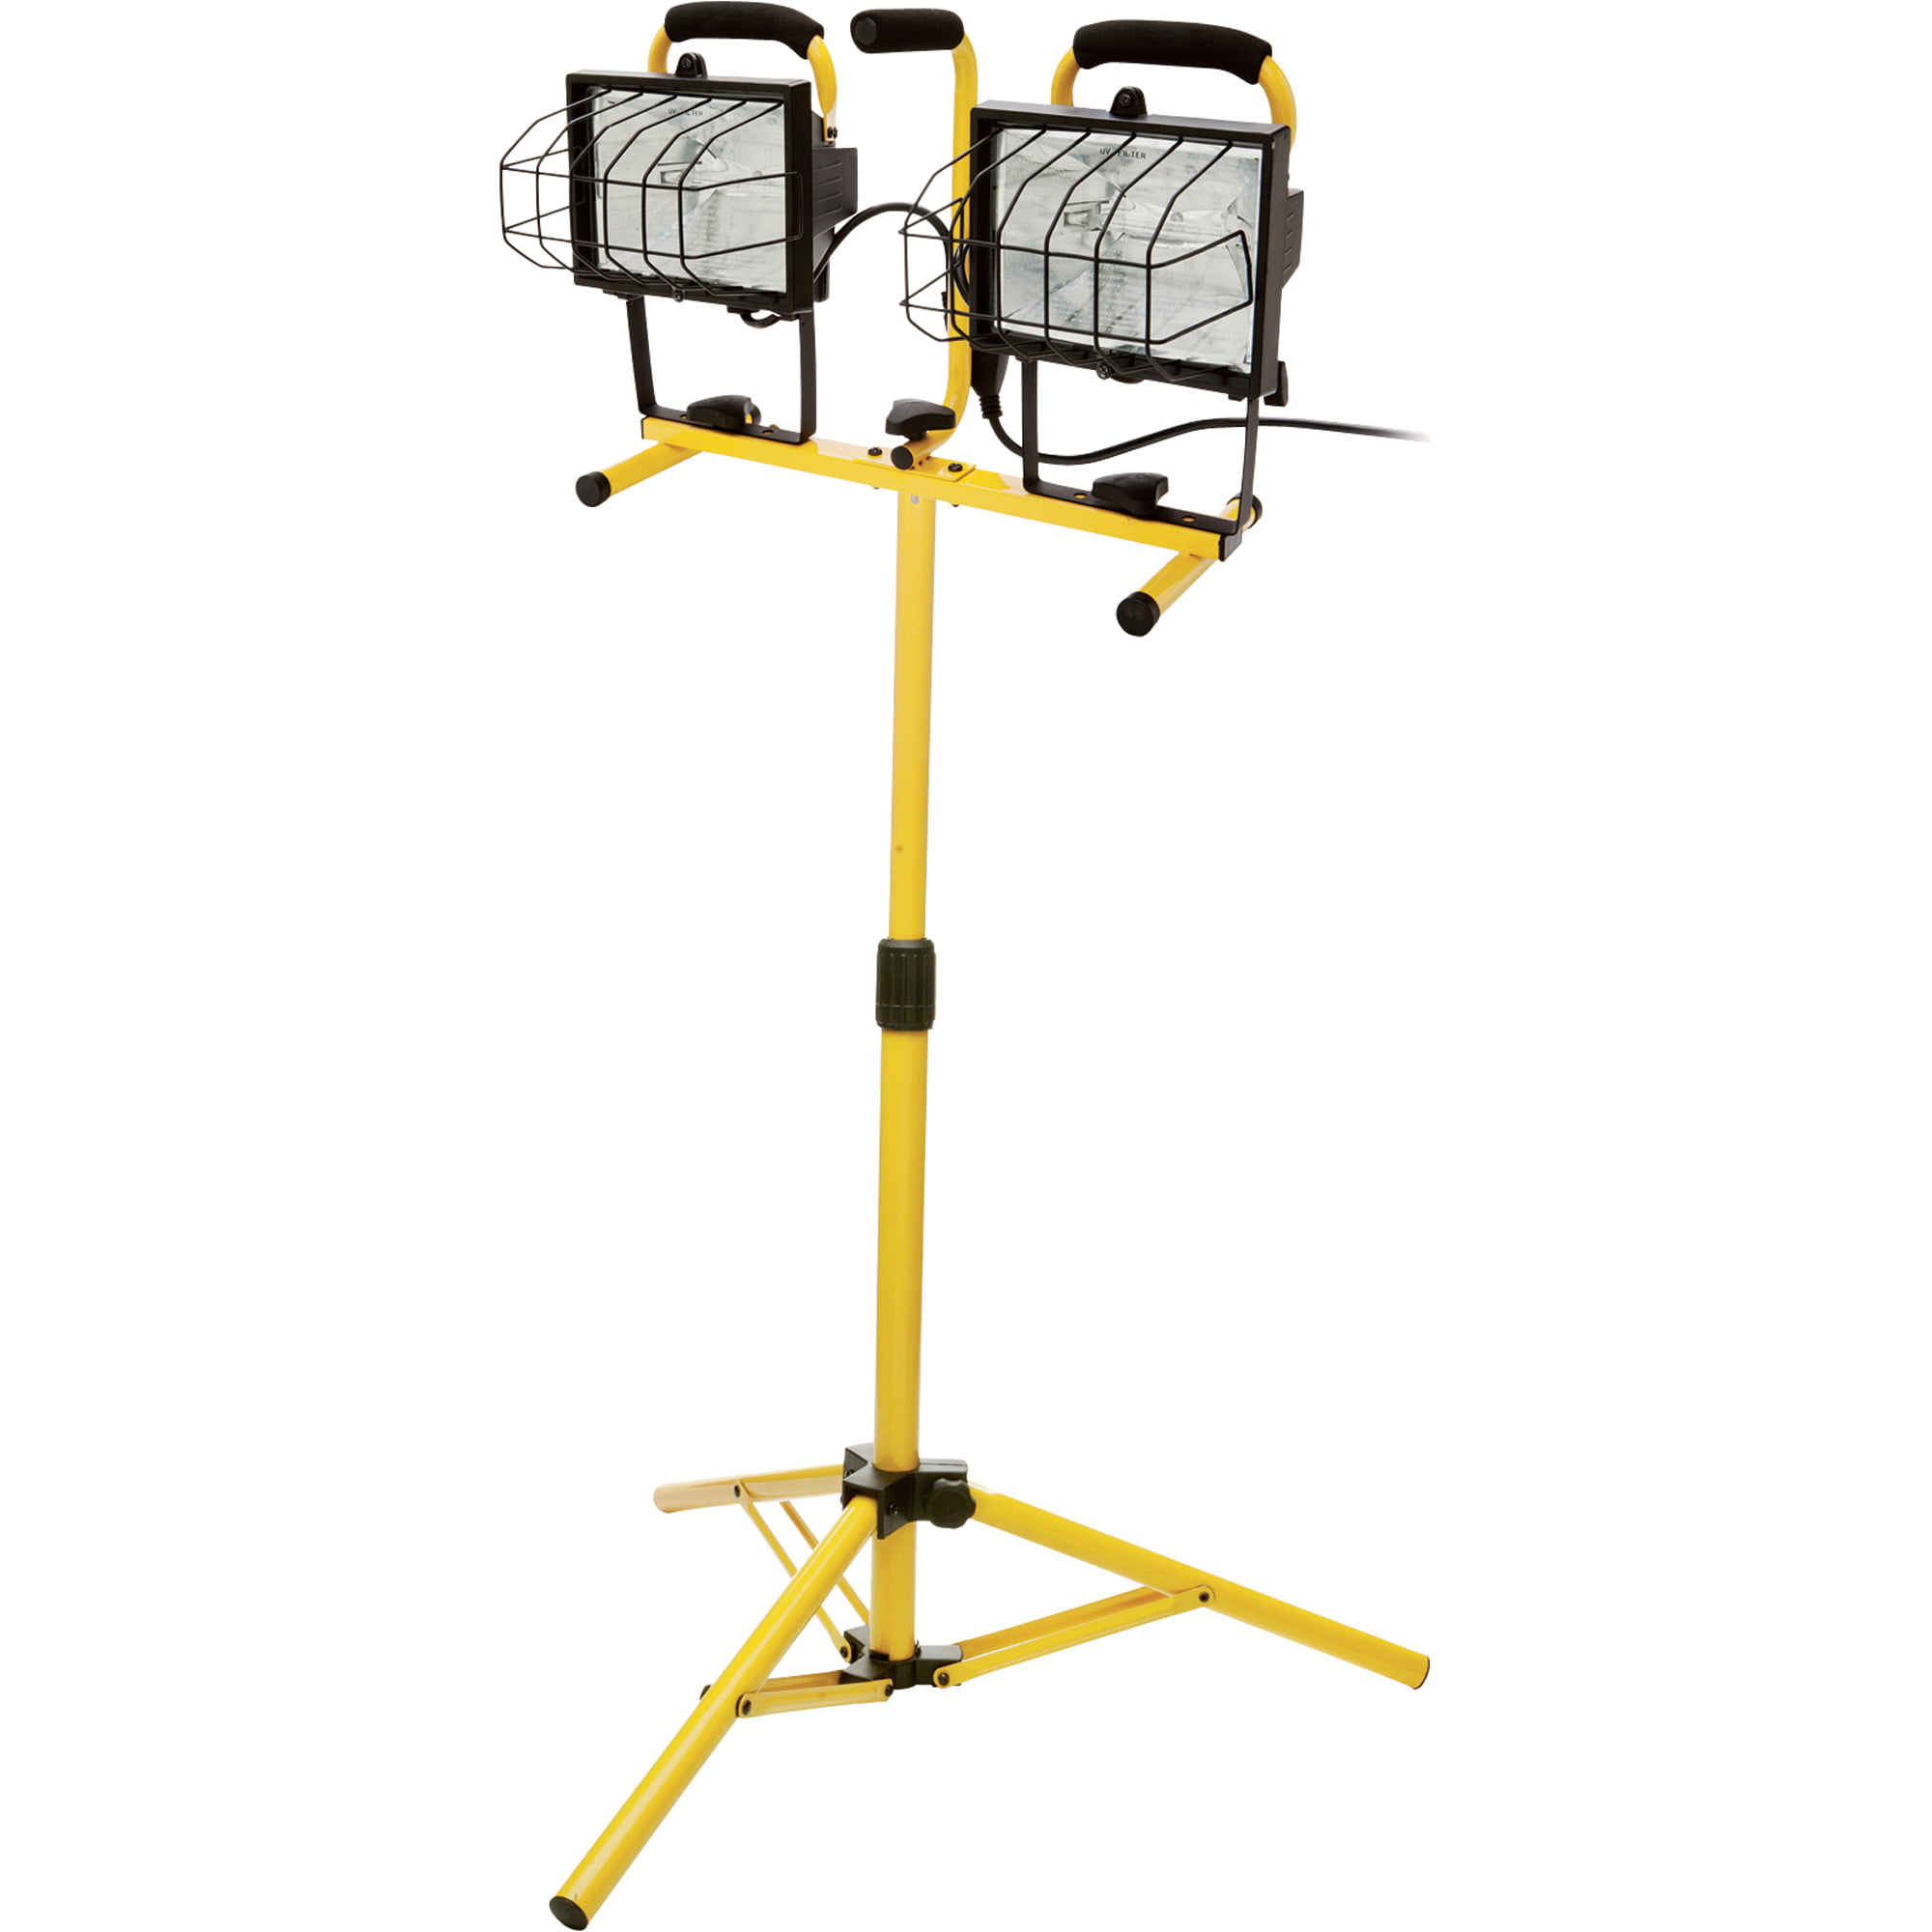 Flood Lights With Stand : Double flood light on stand